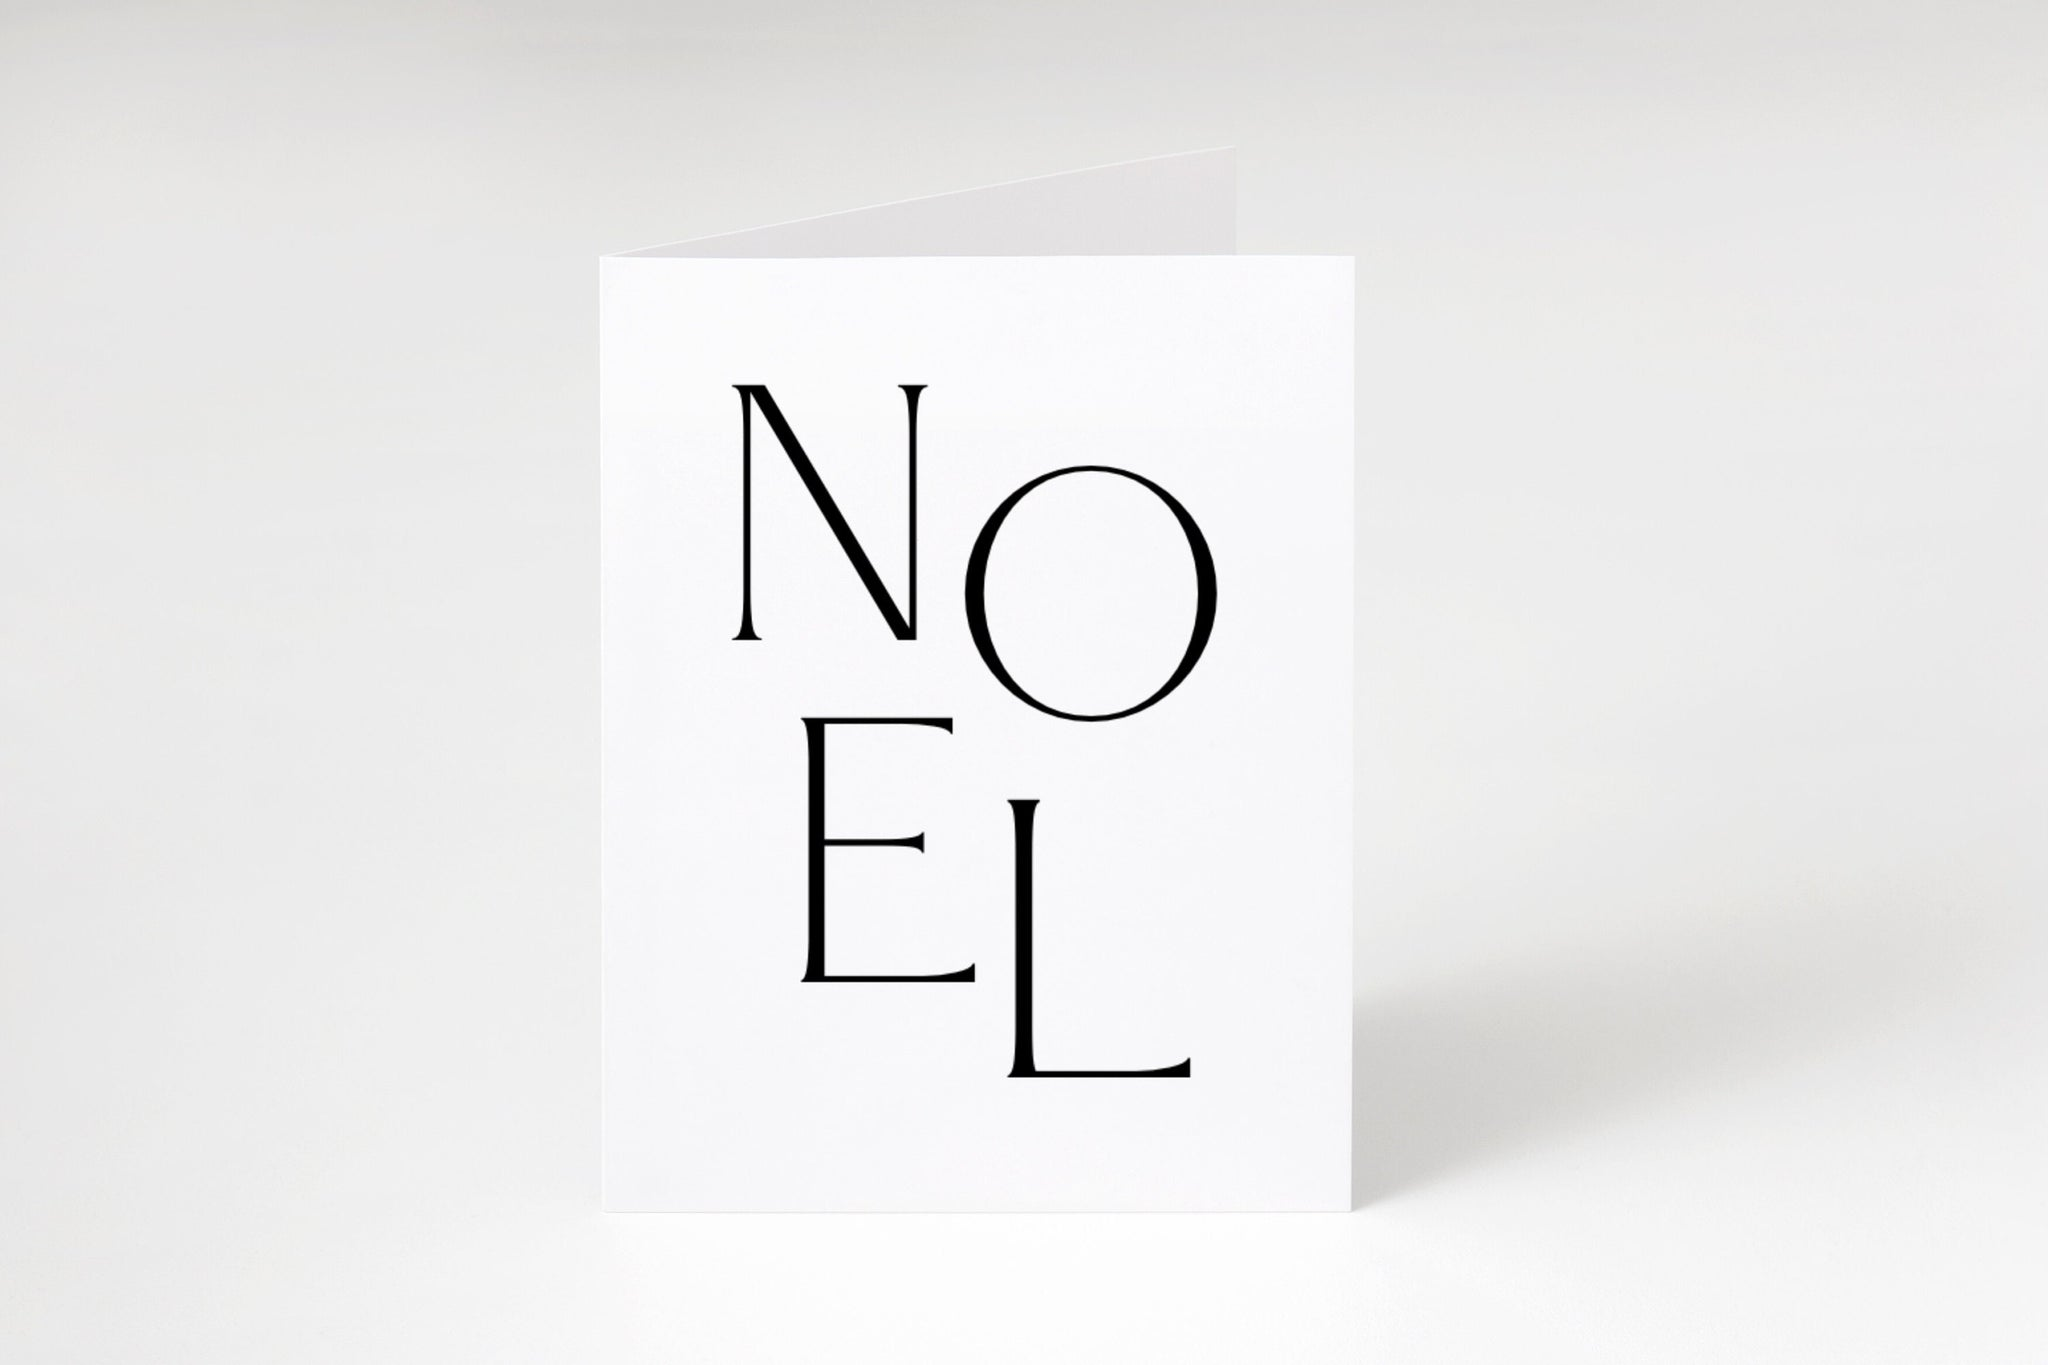 Noel Christmas cards, Noel card set, Noel stationery set, Noel greeting card, Christmas notecards,Christmas card pack,Black and white cards,